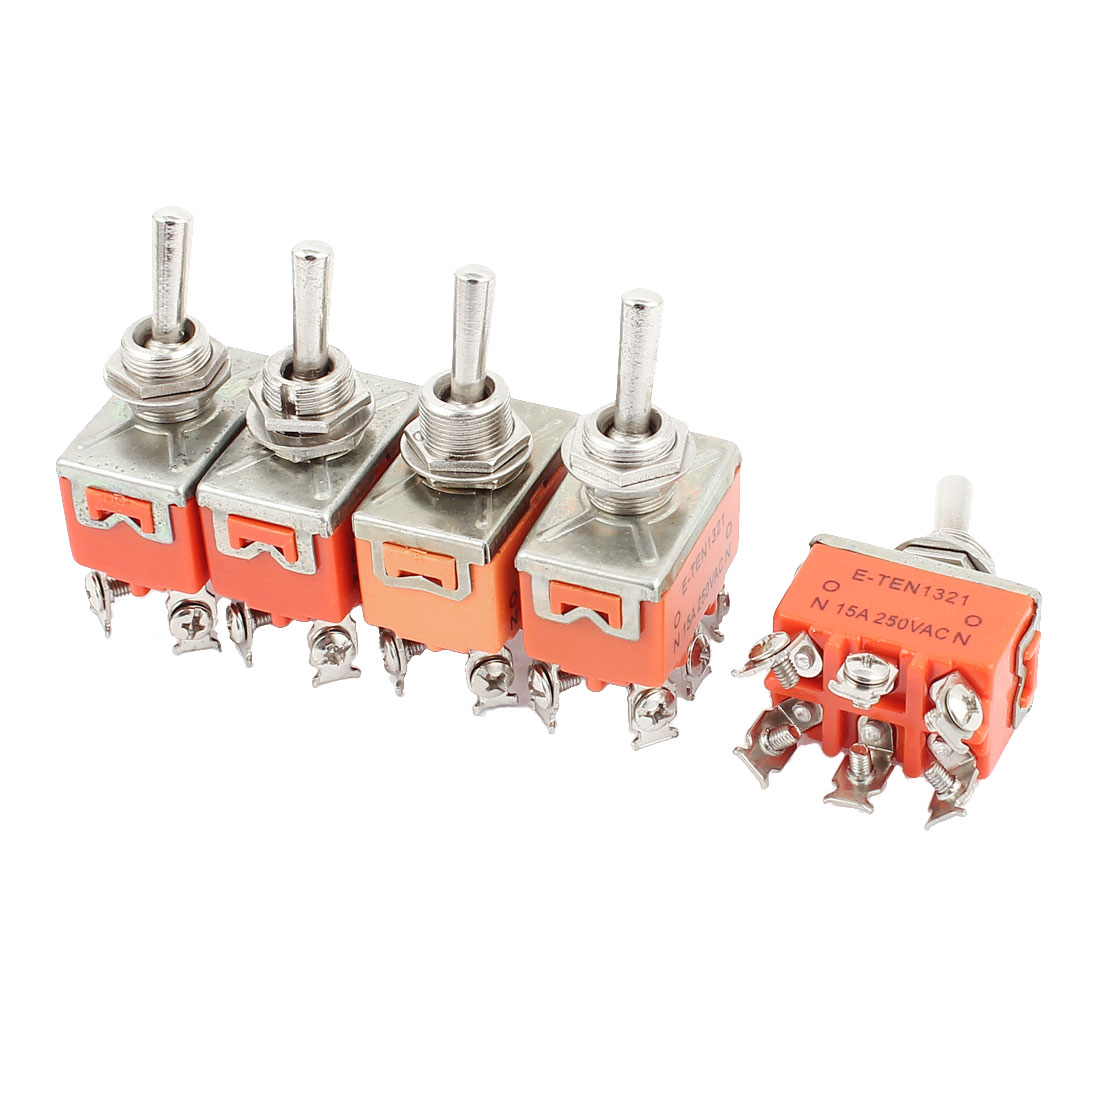 5 Pcs AC250V 15A DPDT ON-ON 2 Positions 6 Terminals Latching Toggle Switch